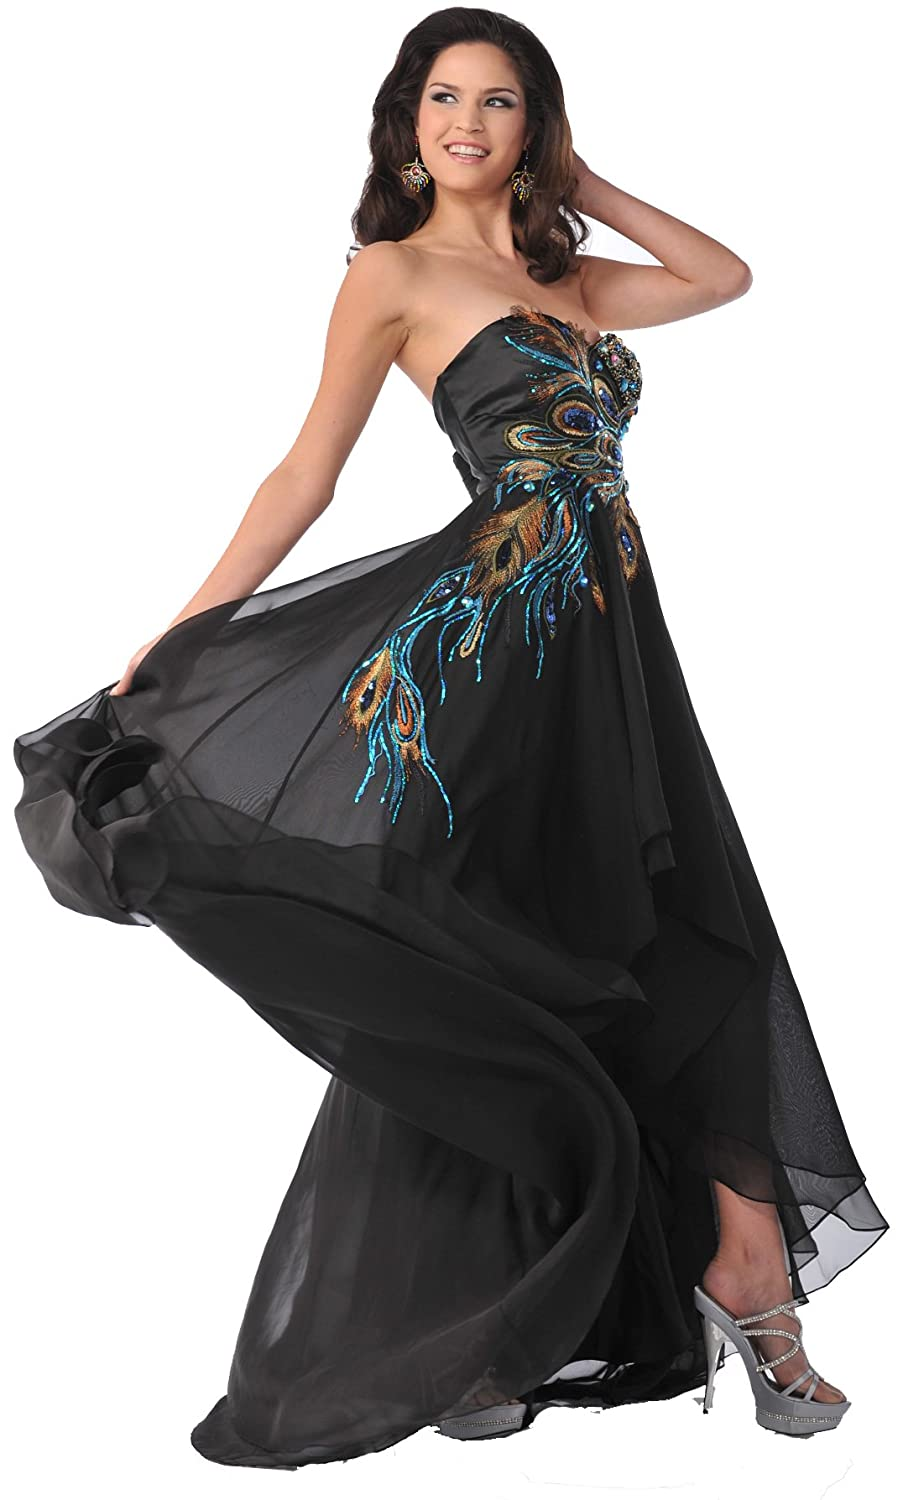 Amazon.com: Meier 5846 Womens Strapless Peacock Embroidery Chiffon Gown (18): Clothing